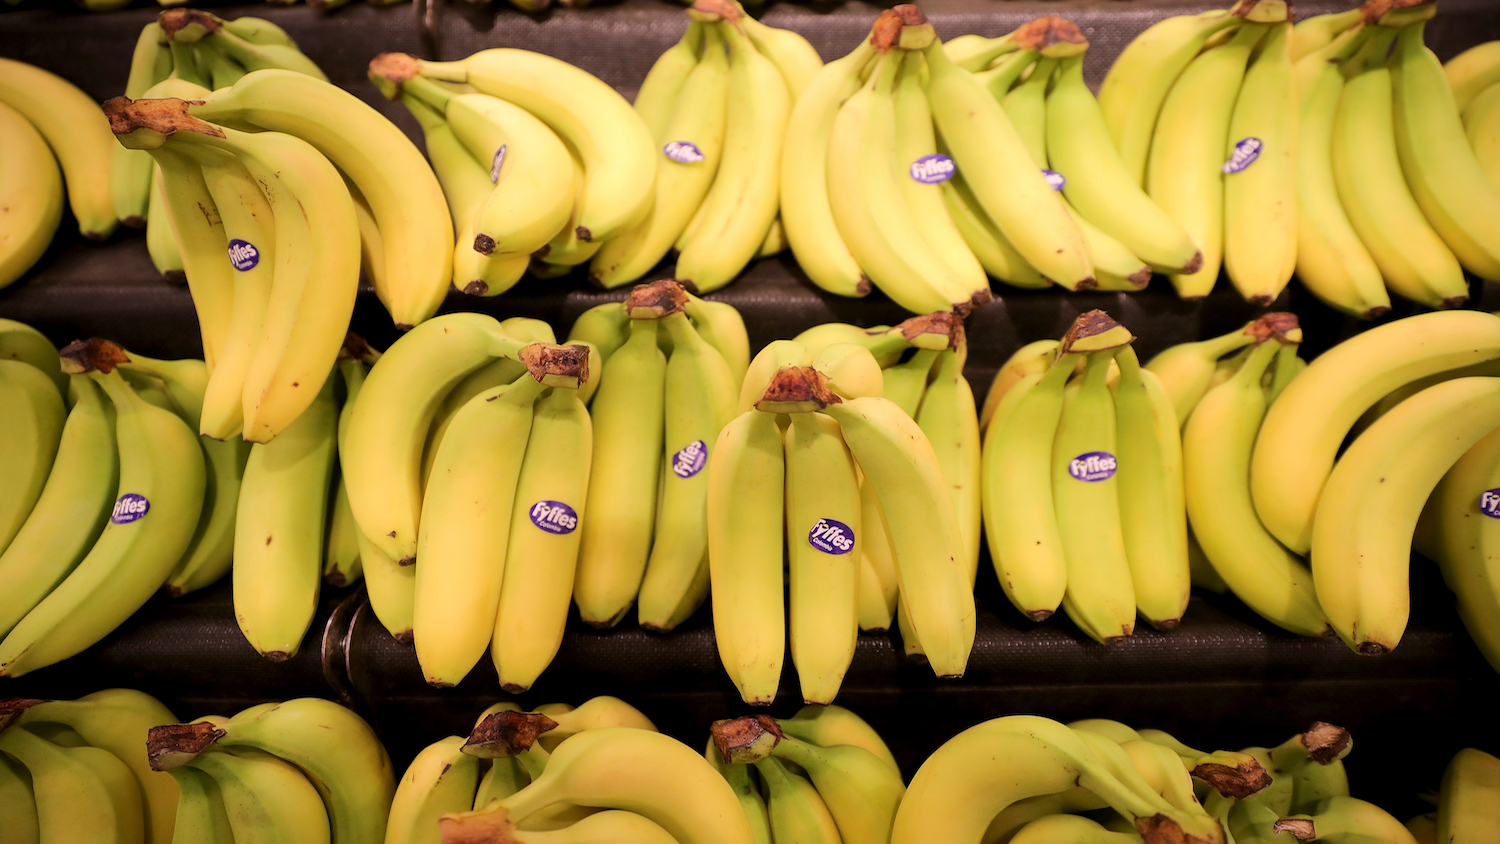 Man Asks for Gluten Free Meal on Flight, Gets a Banana Instead